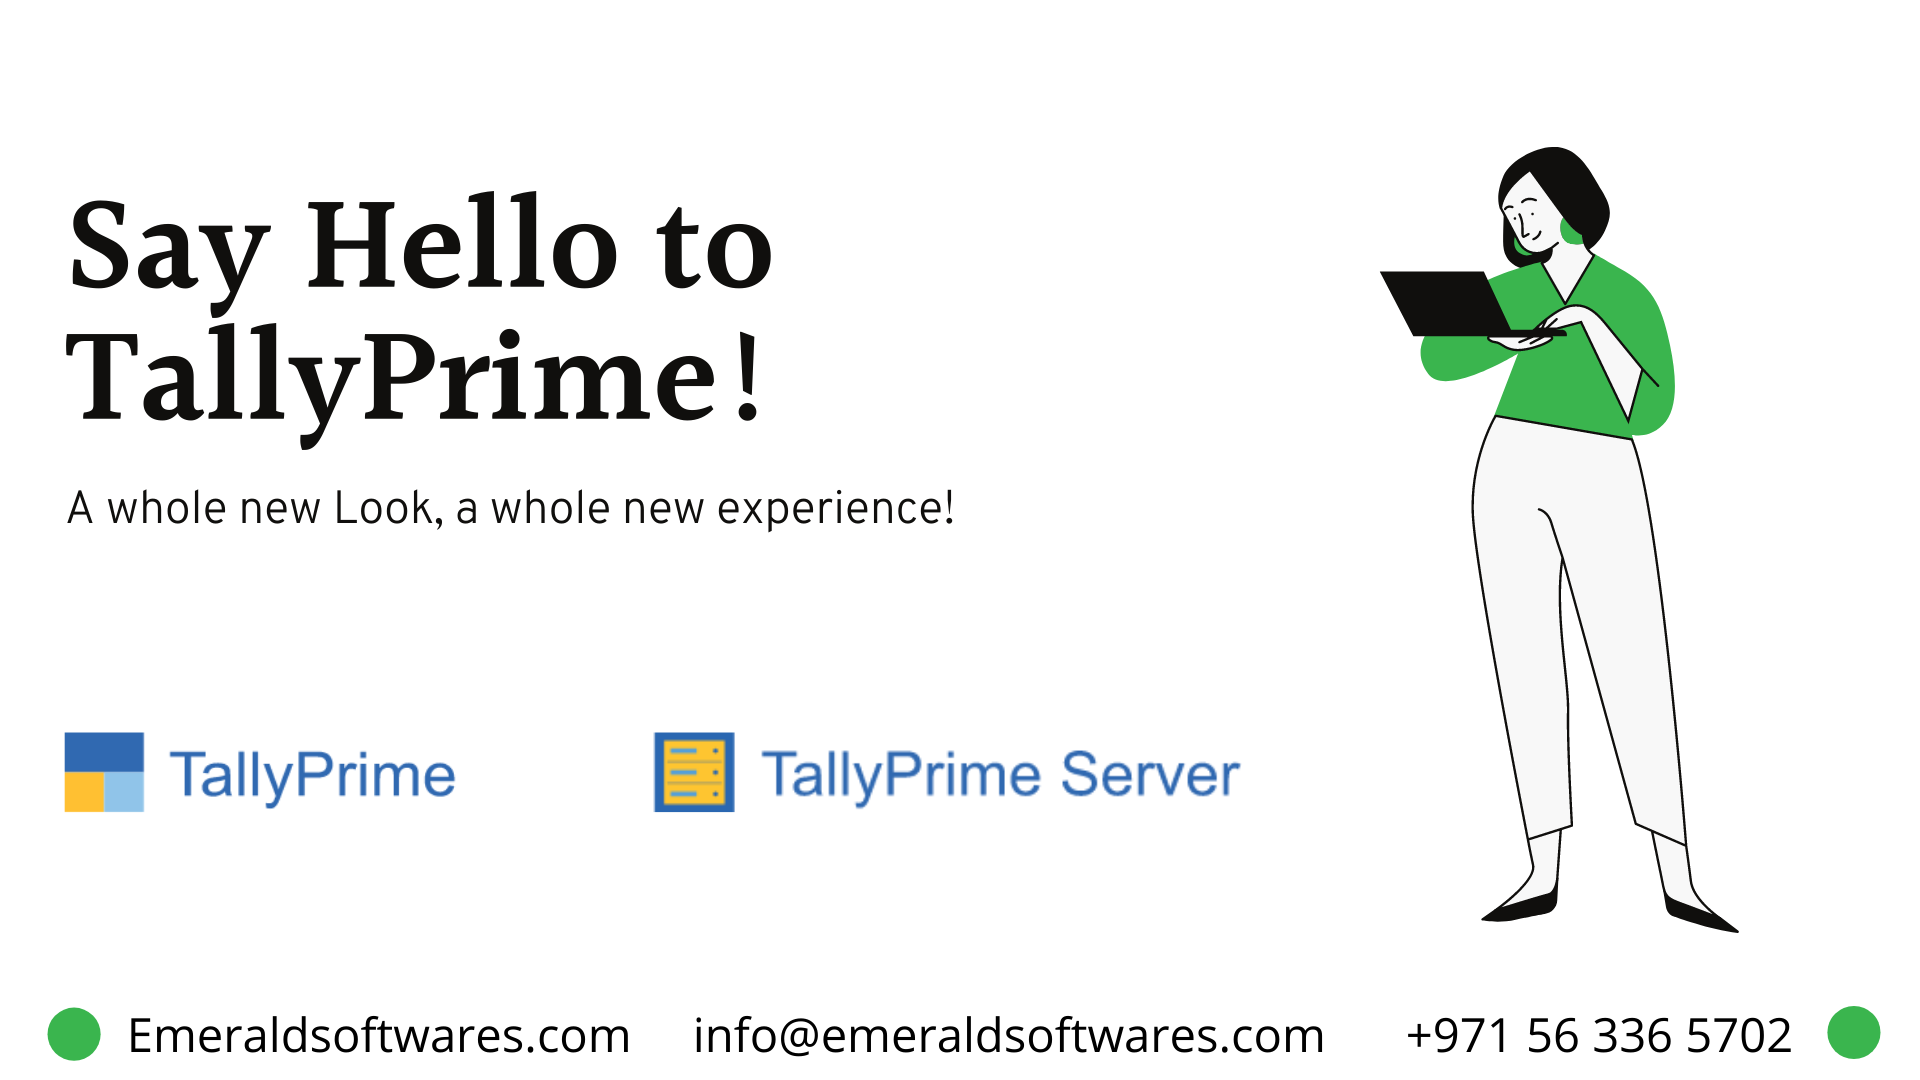 TallyPrime: One stop solution for Growing Business